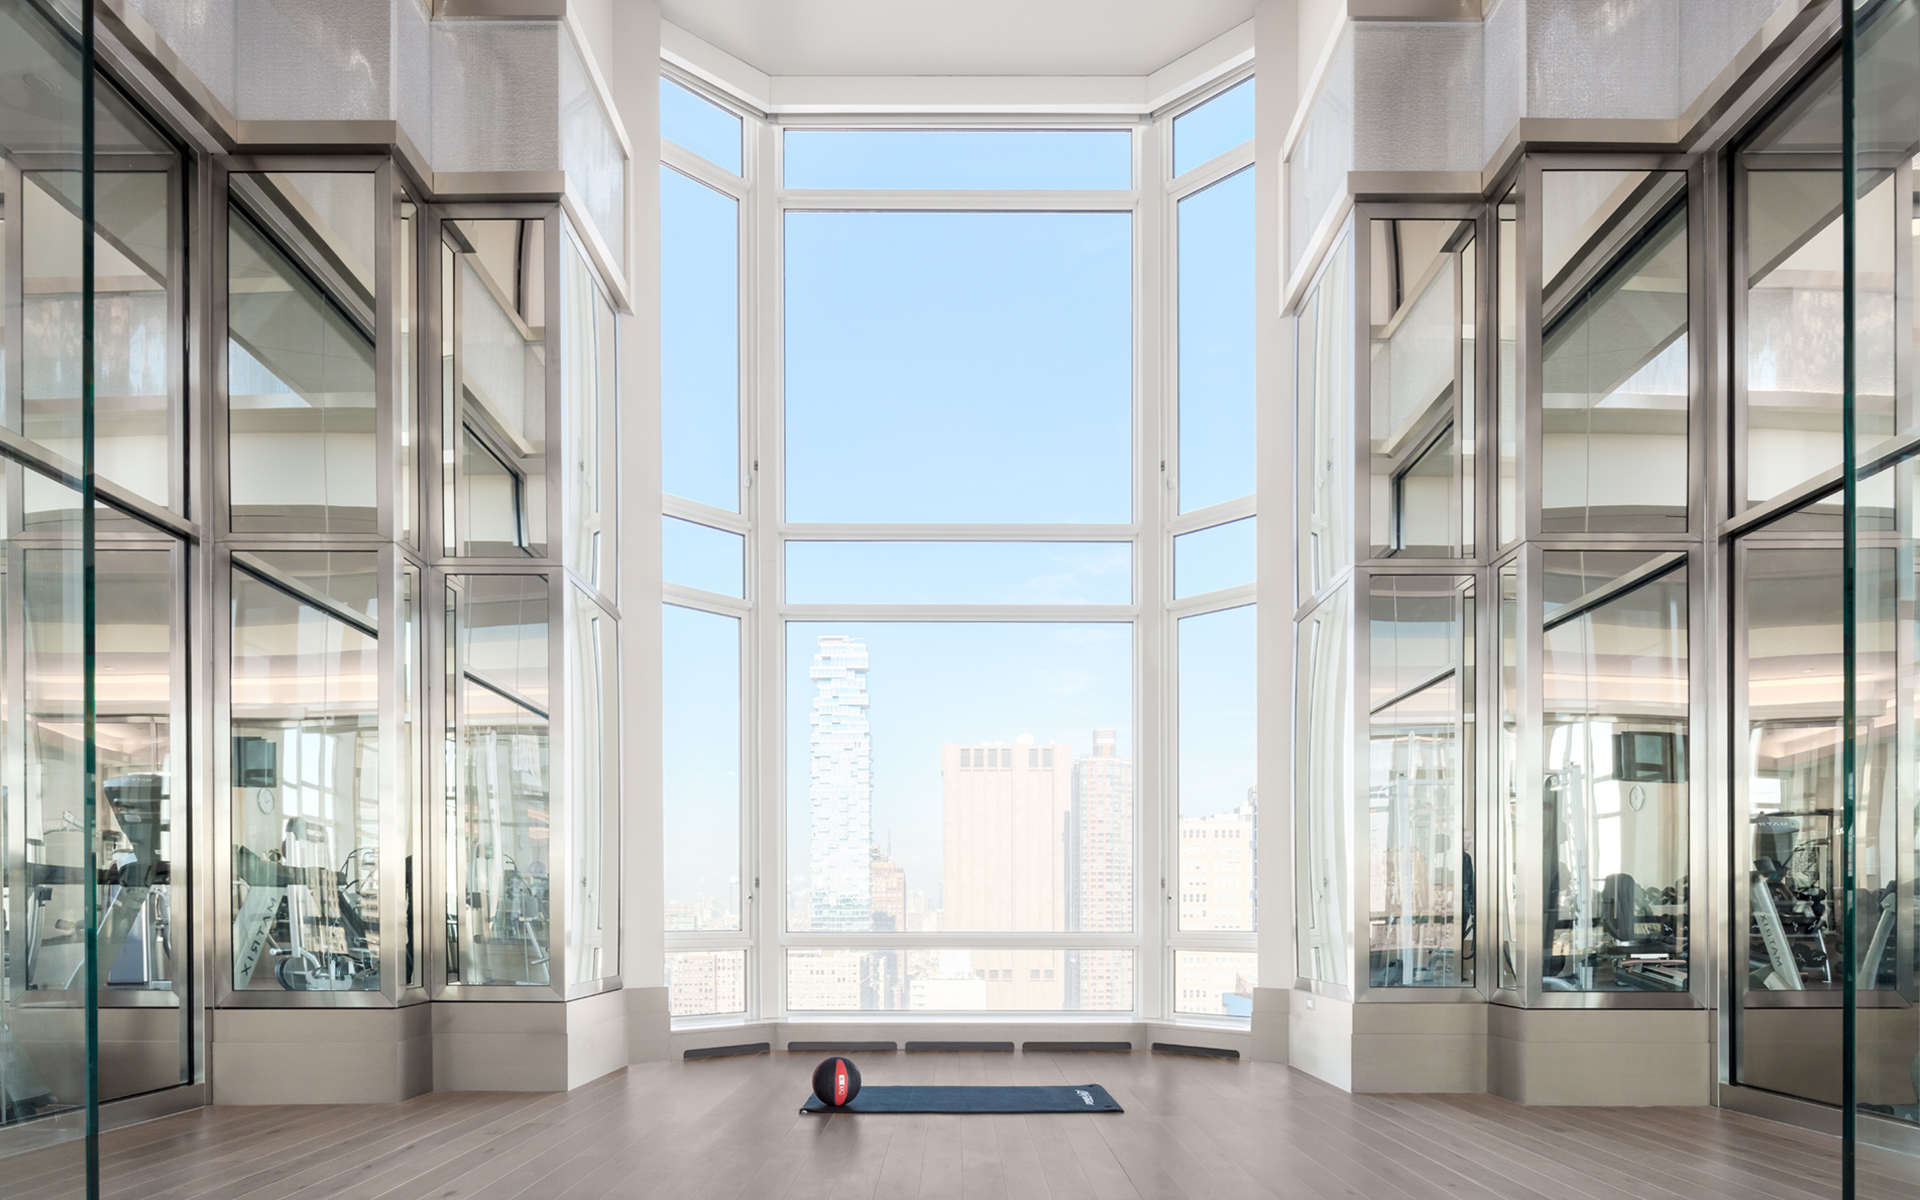 Exhilarating views of Manhattan, state-of-the-art equipment, and a glass-walled yoga studio.